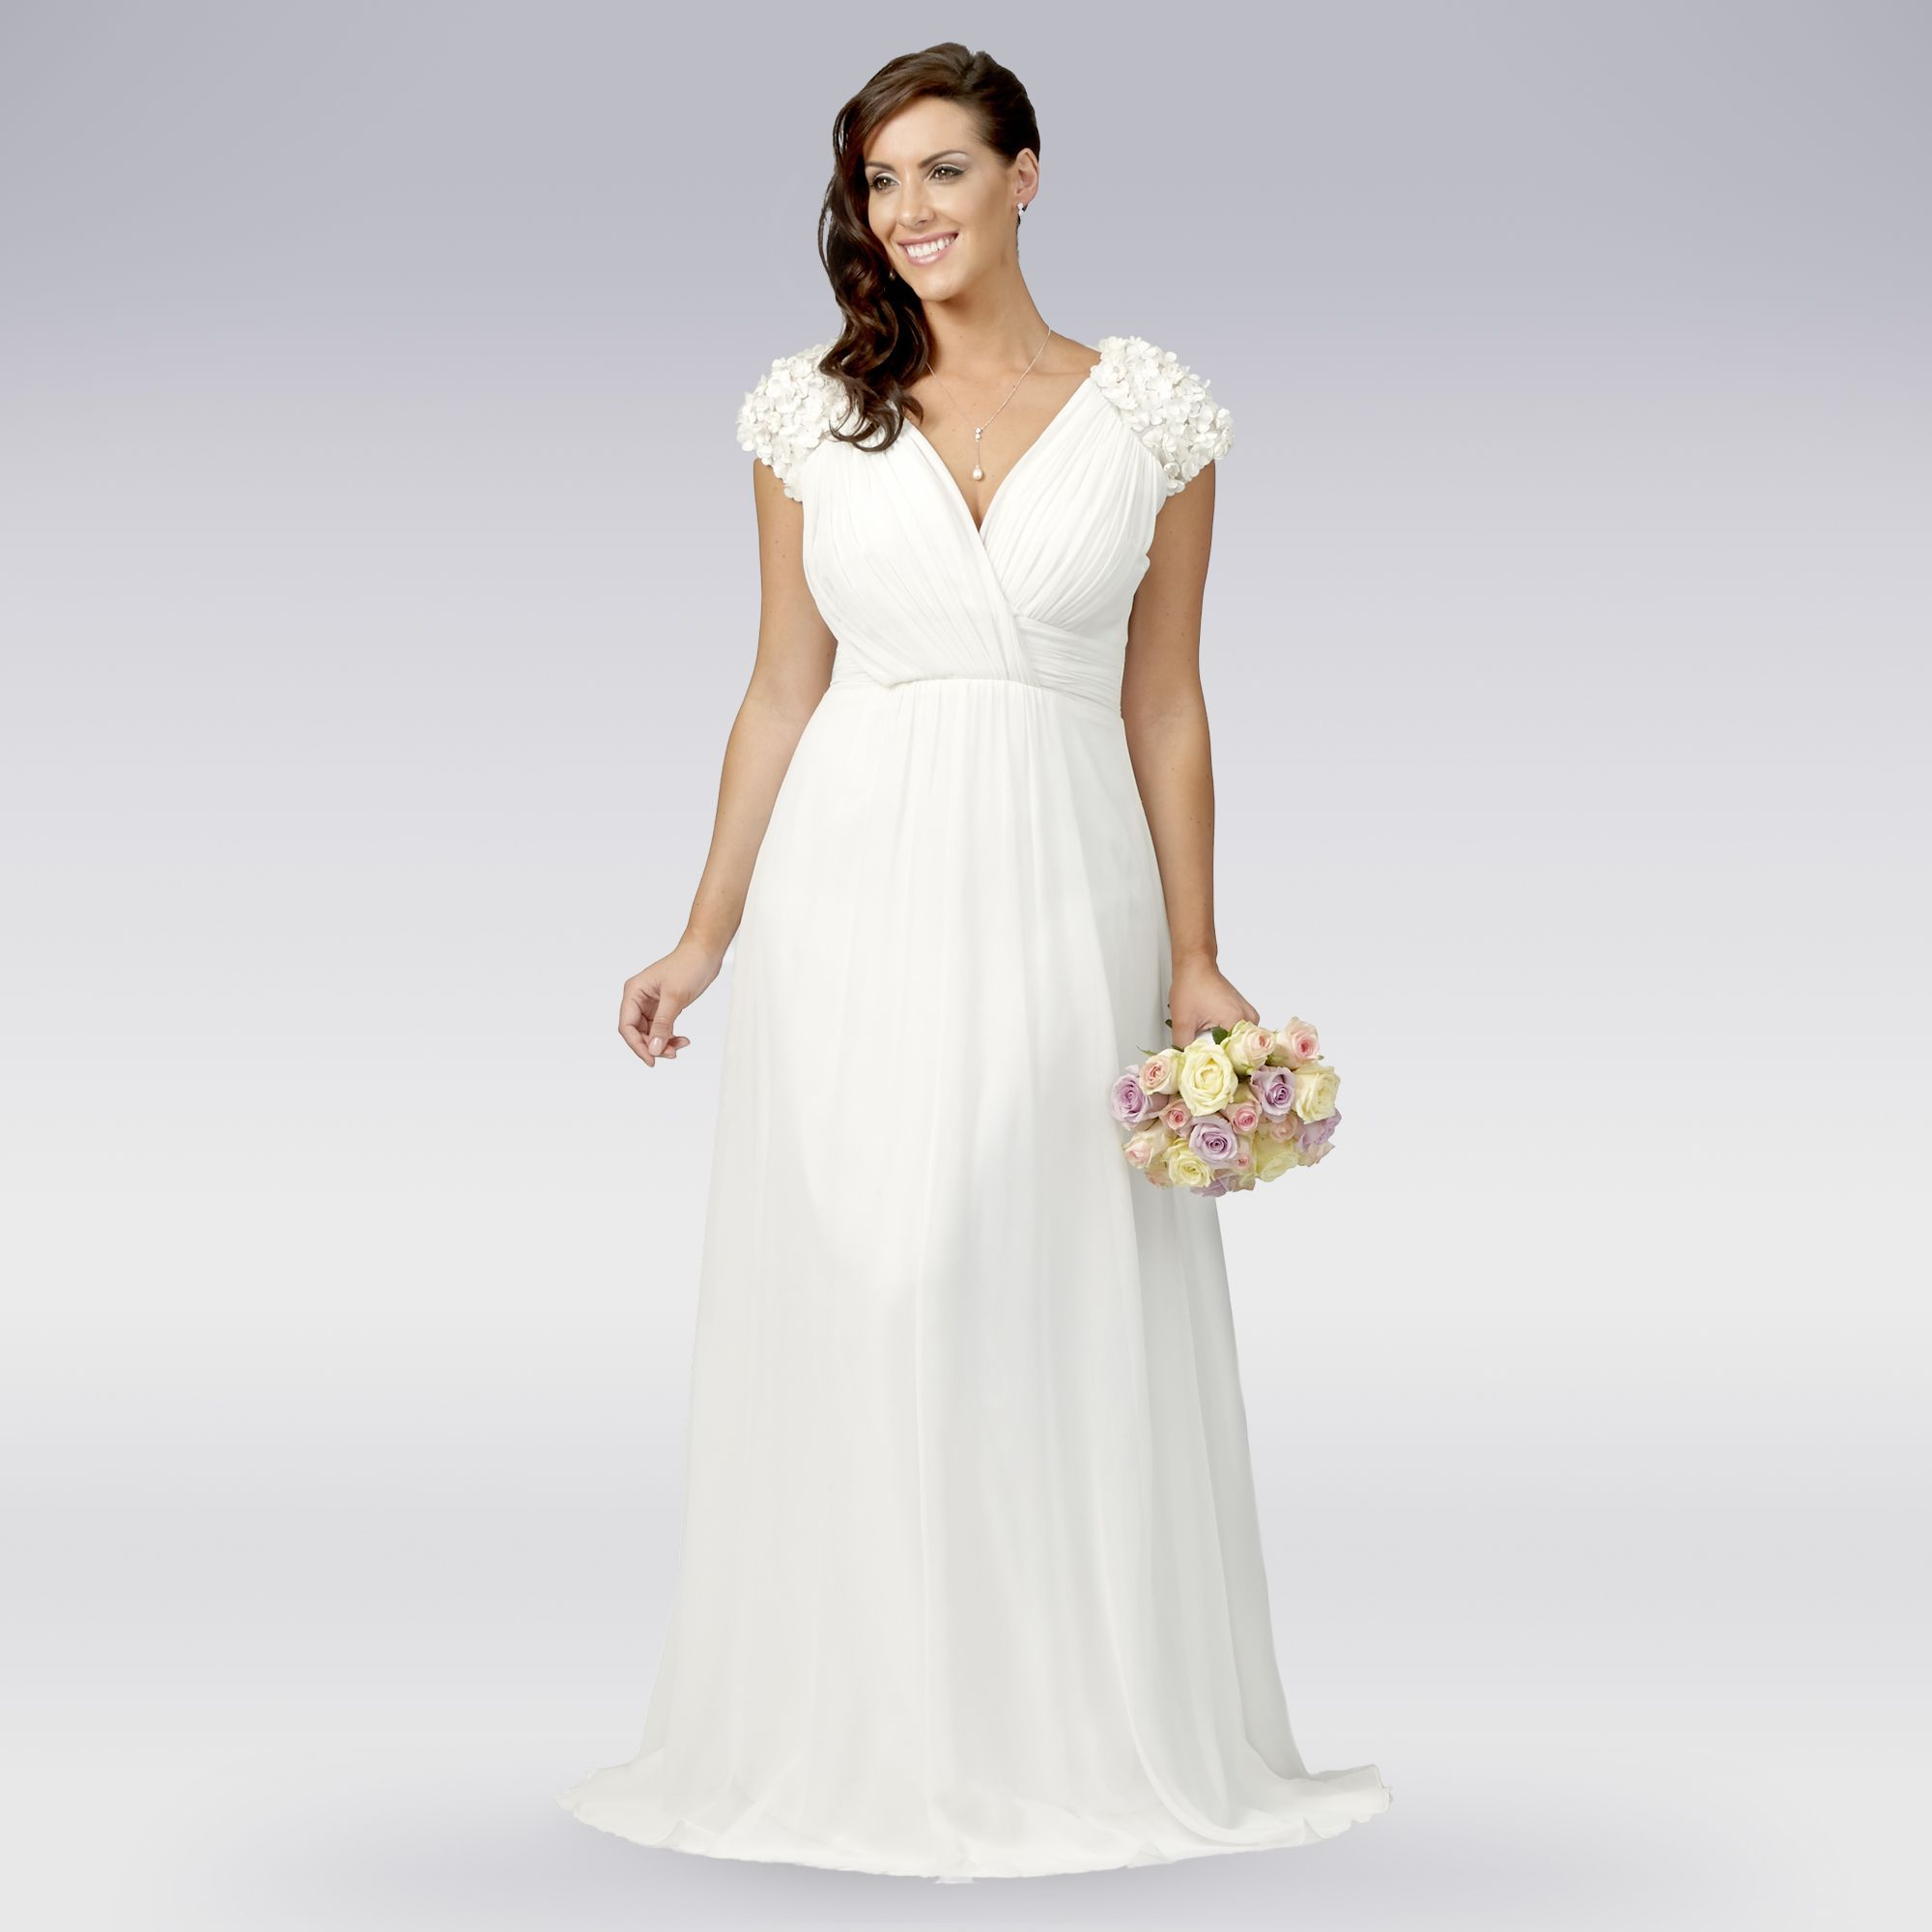 Beautiful Wedding Party Dresses For Women Photo  3 Browse Pictures And High